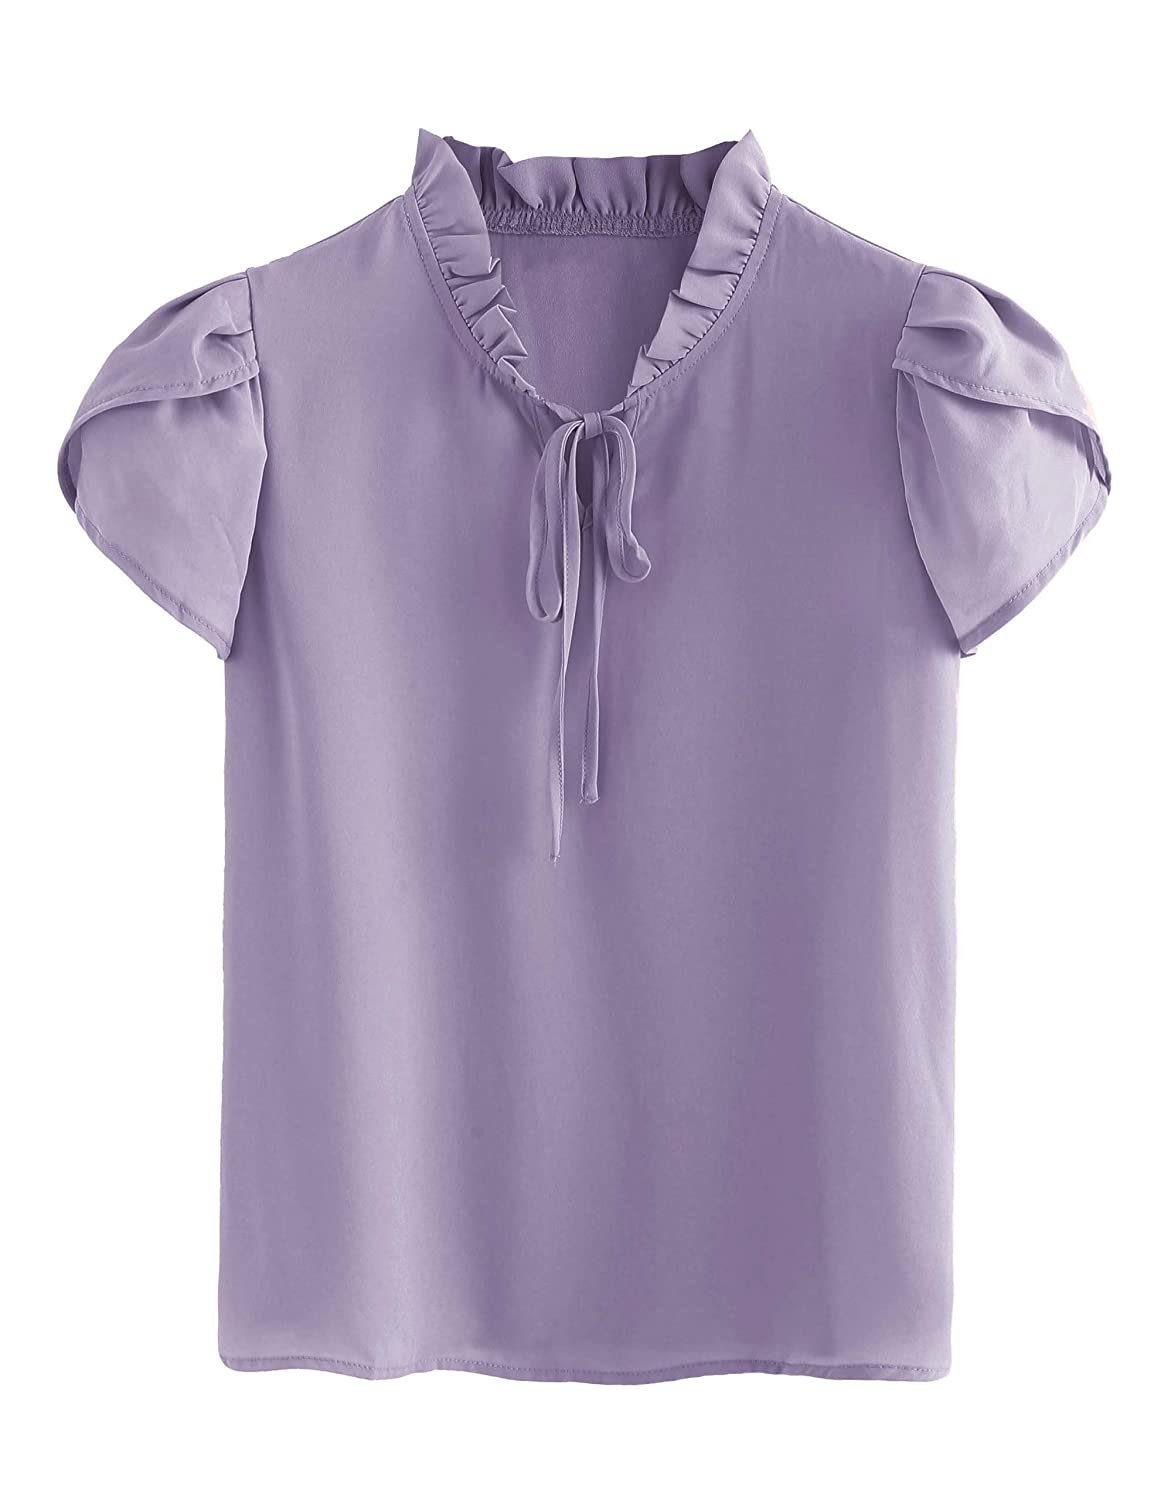 Purple 11 Romwe Women's Casual Cap Sleeve Bow Tie Blouse Top Shirts